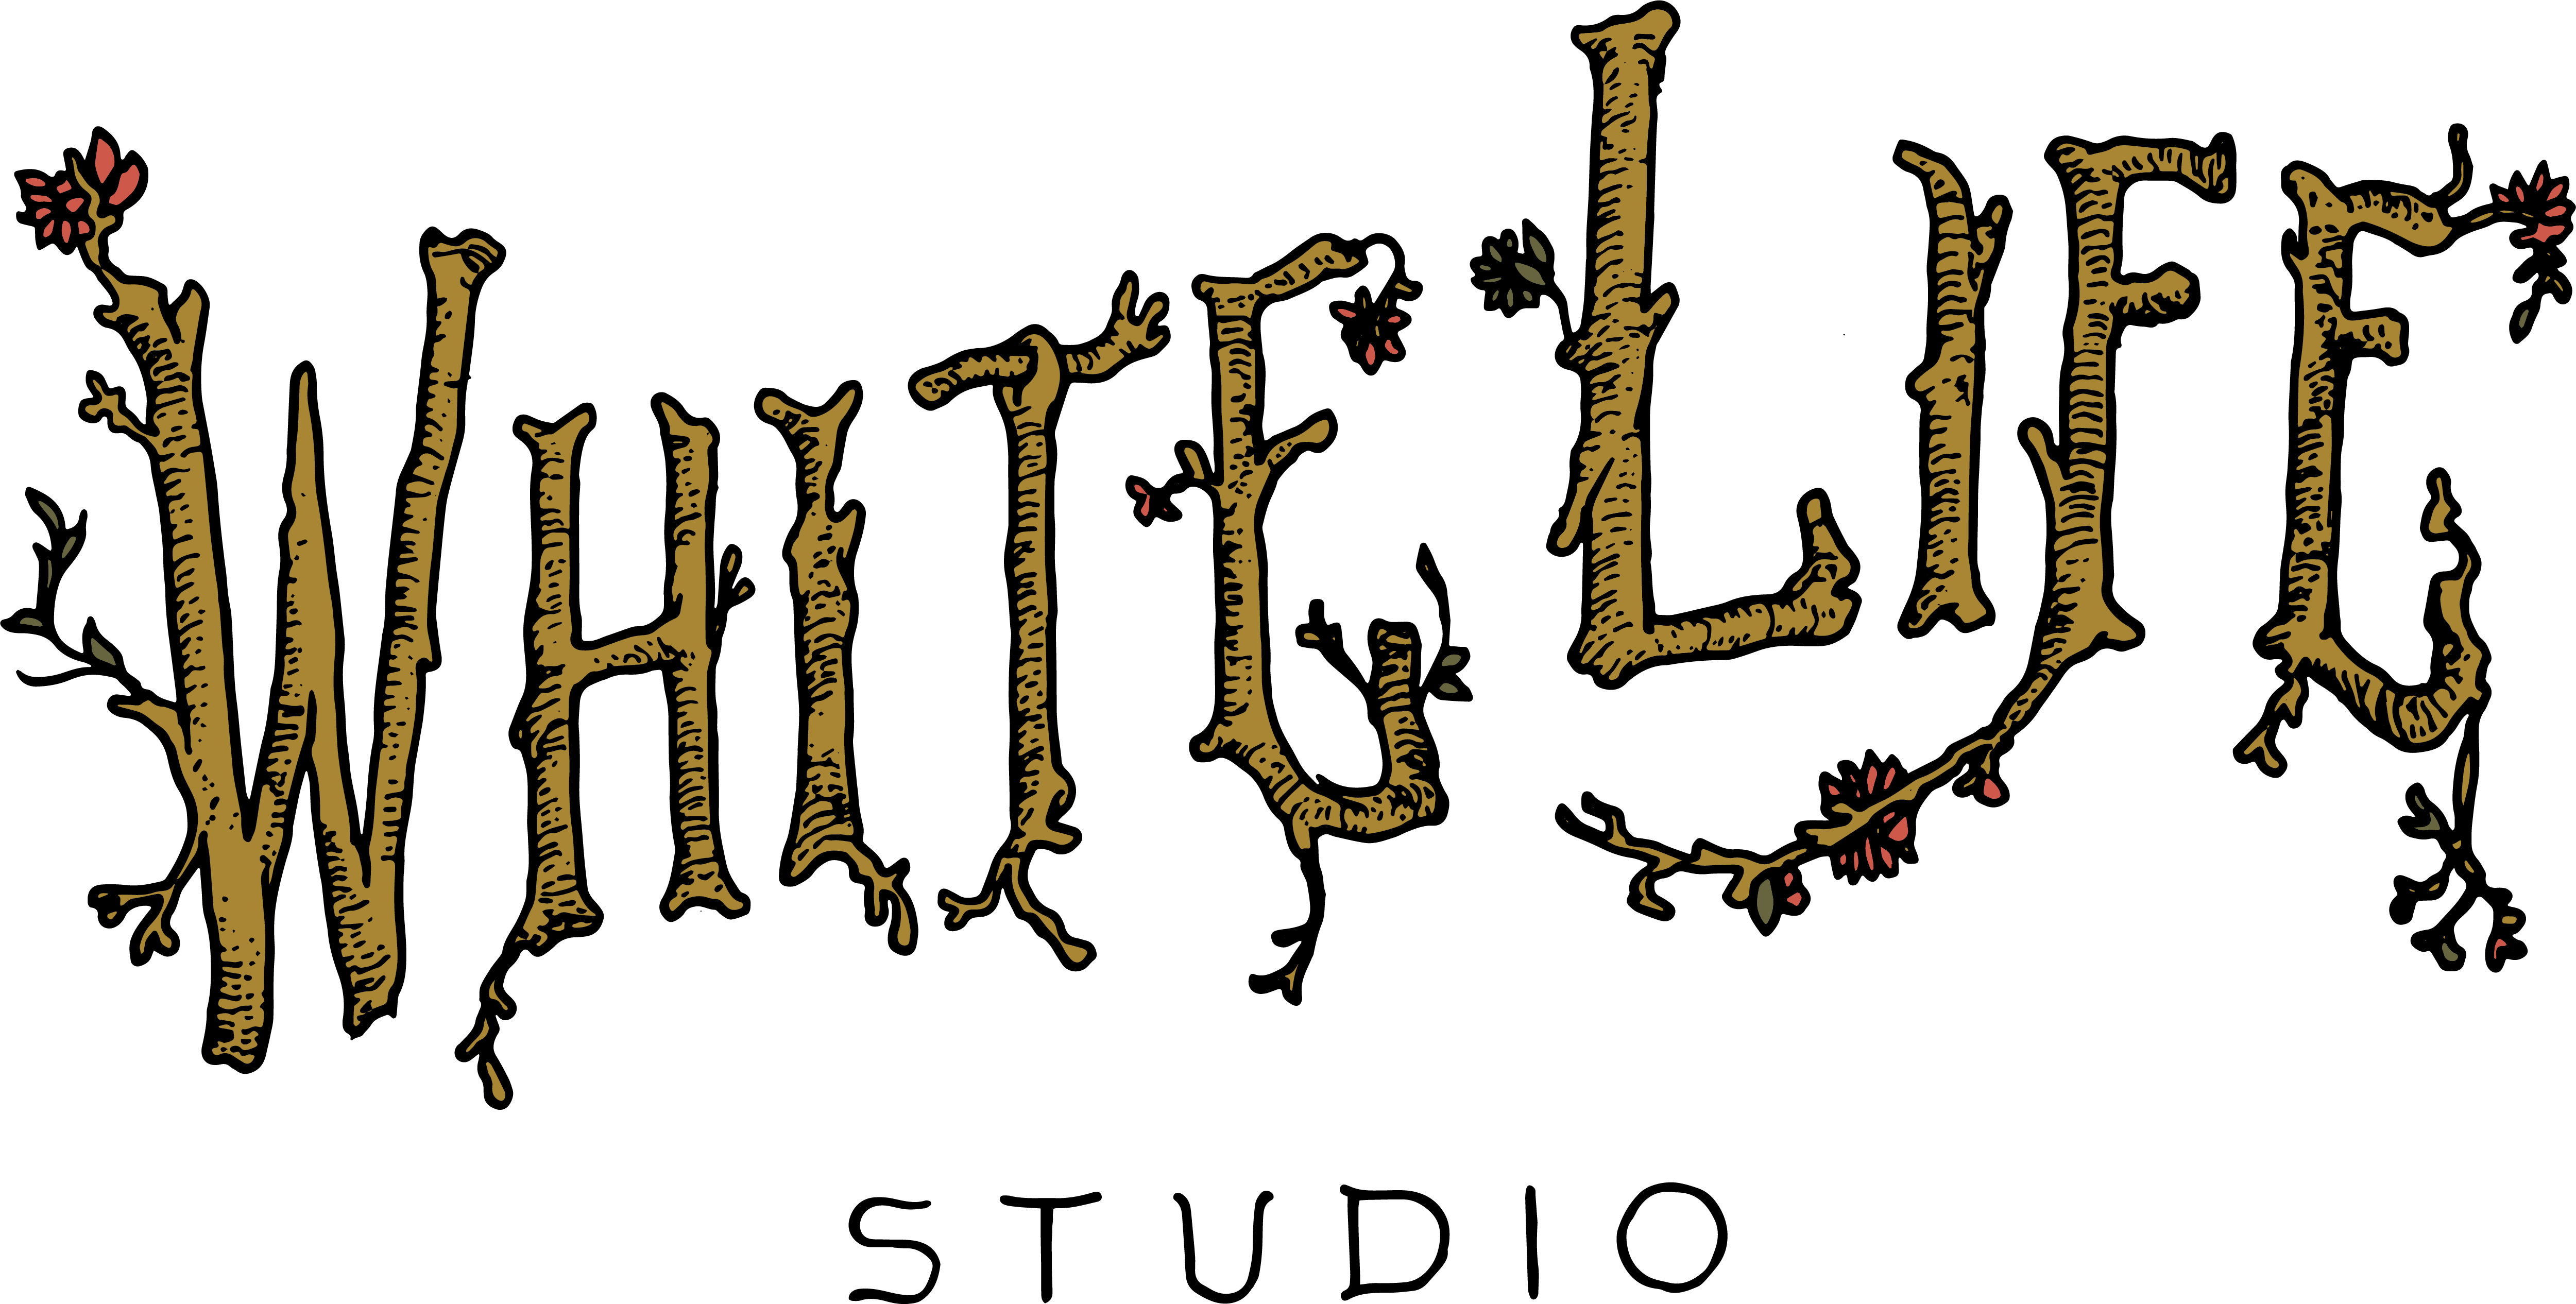 WhiteLife Studio